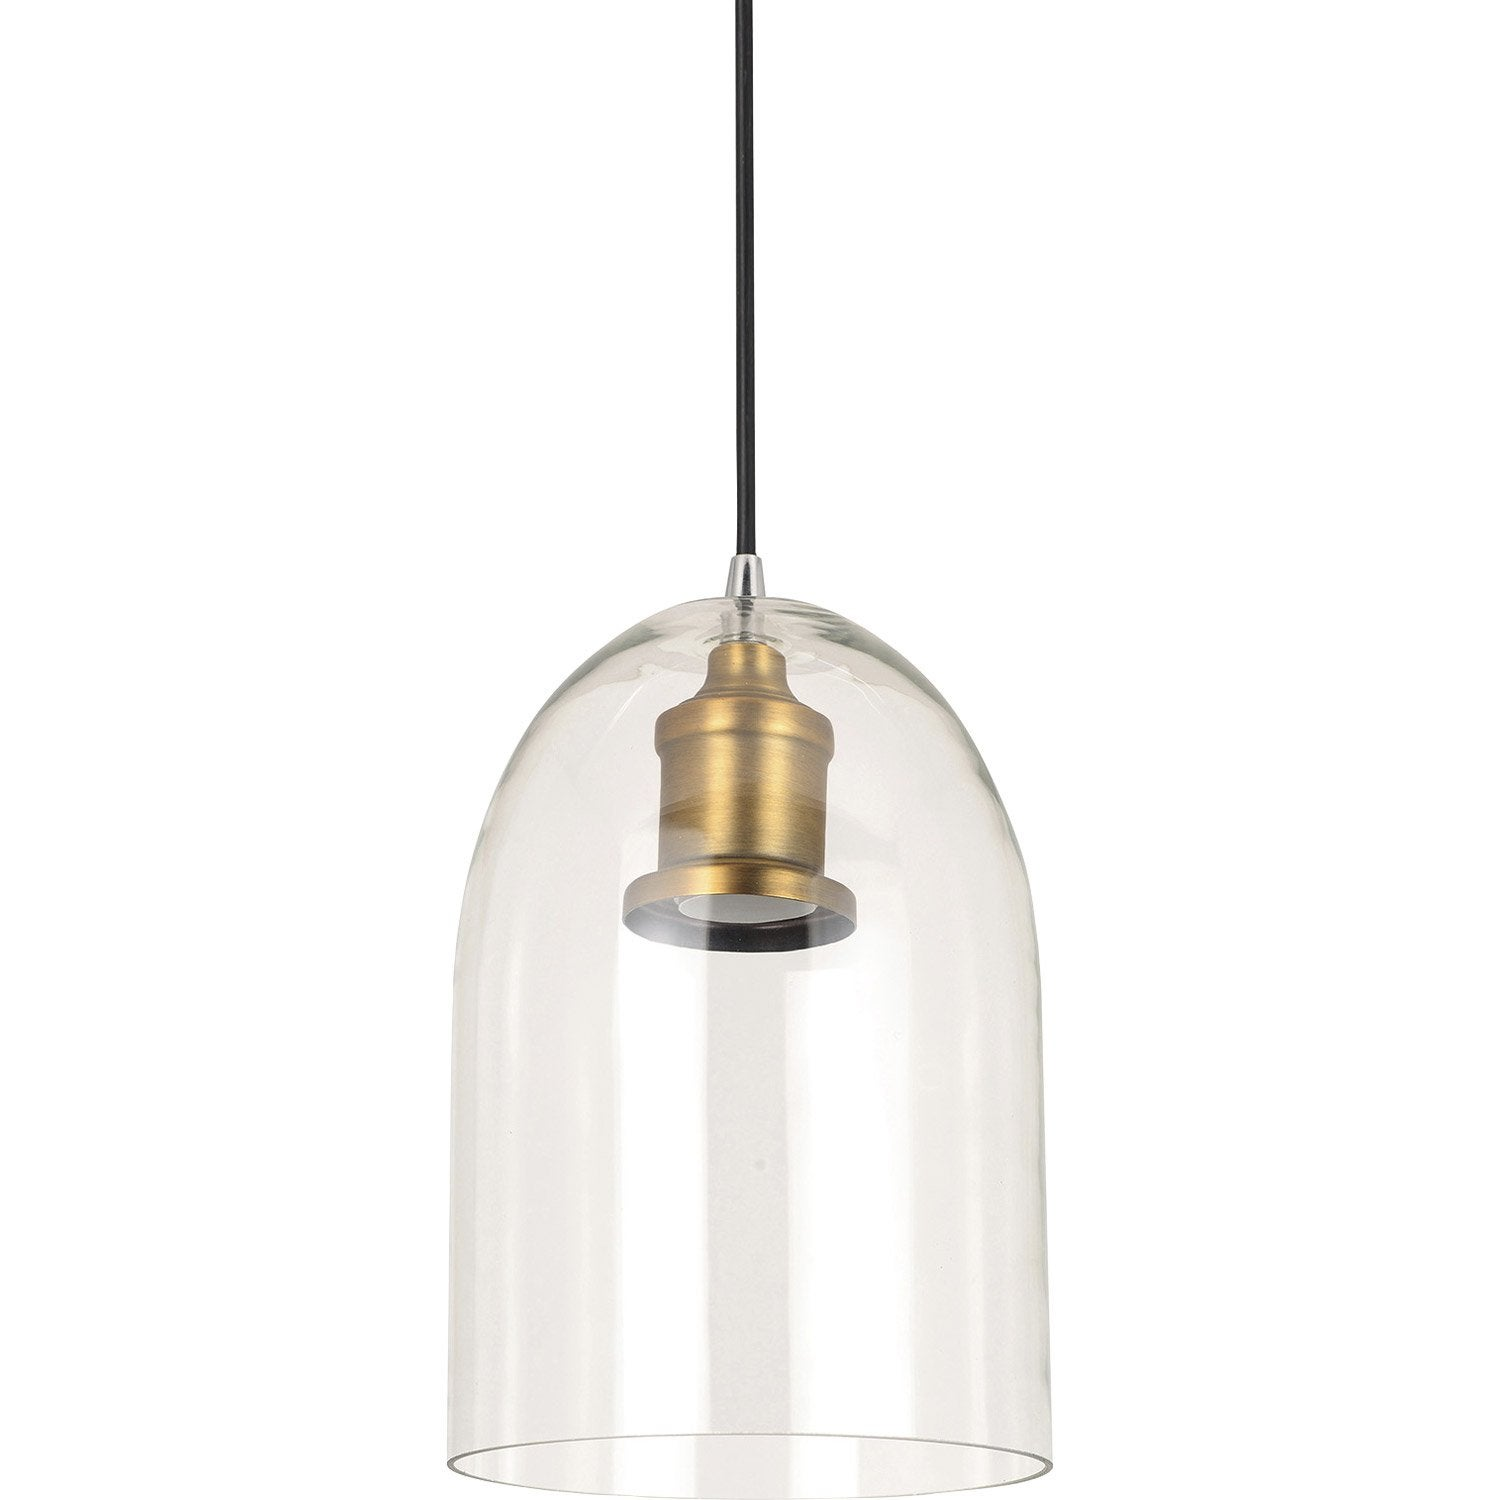 Suspension classique lirton verre transparent 1 x 60 w for Luminaire exterieur design leroy merlin